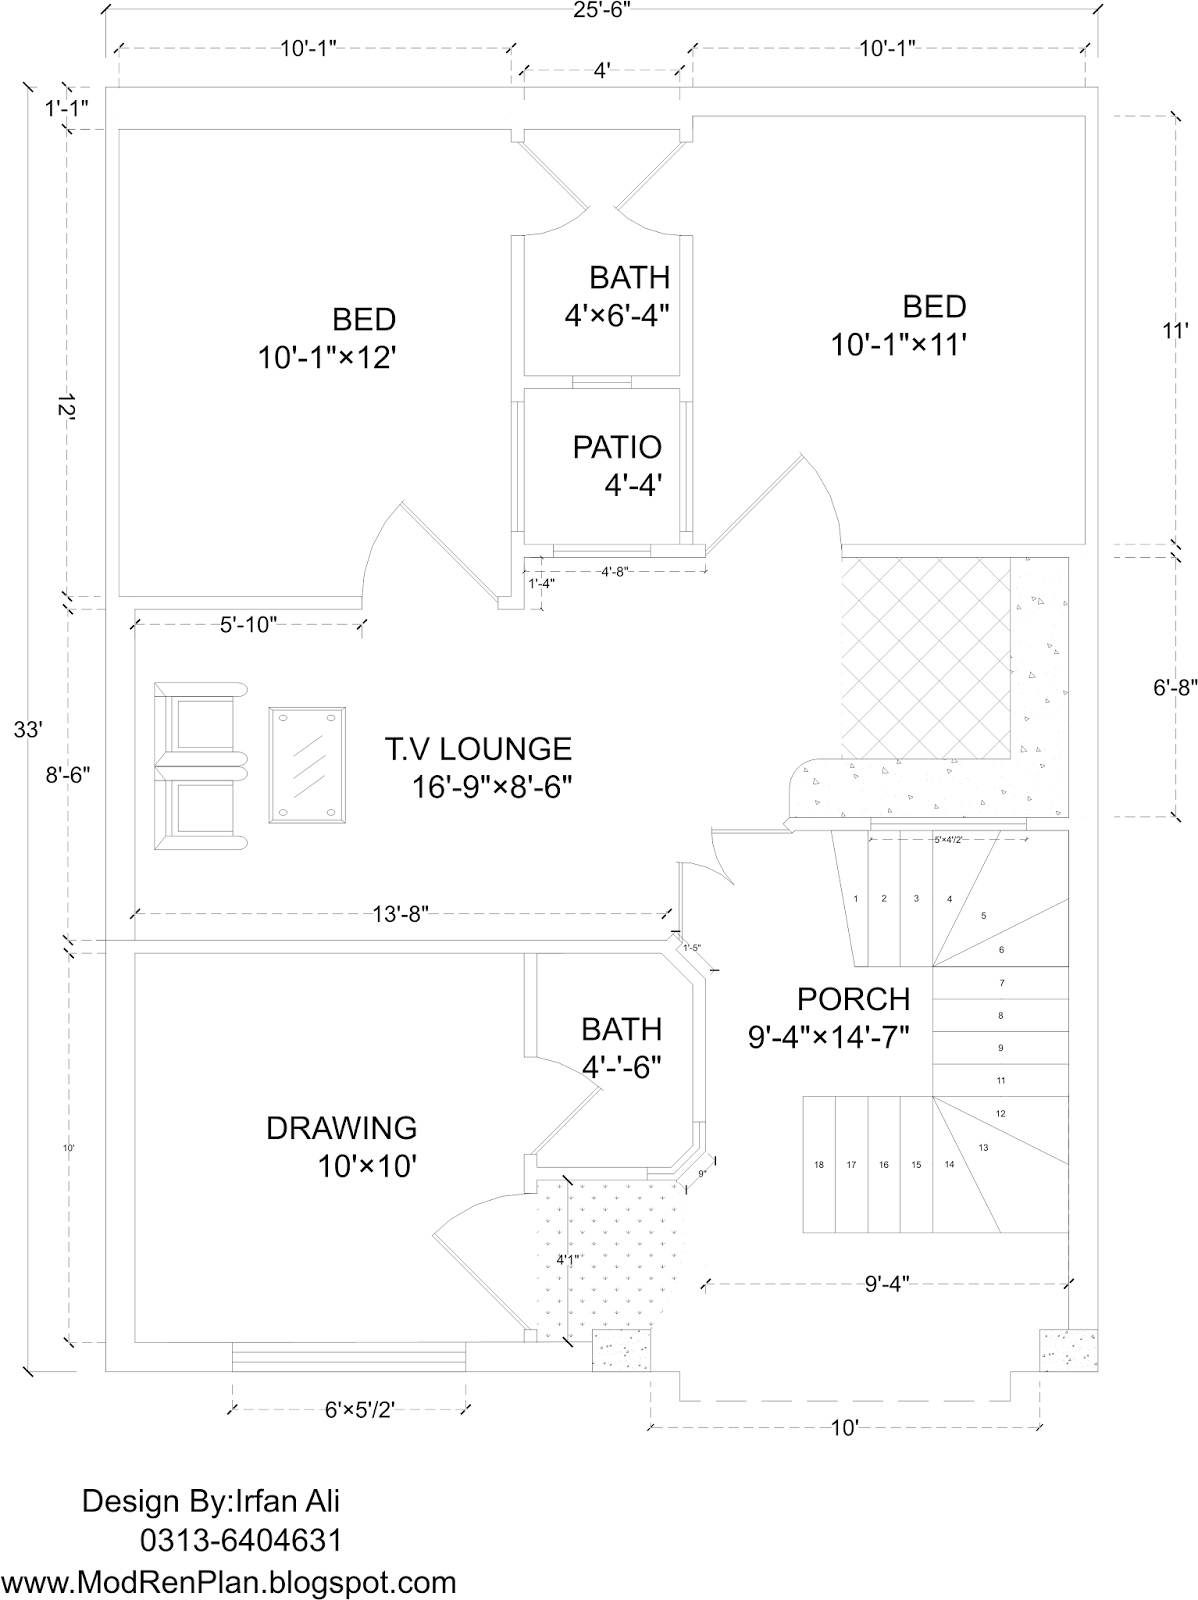 5 marla house plan and map with detail 25x33 house plan for 5 marla house modern design